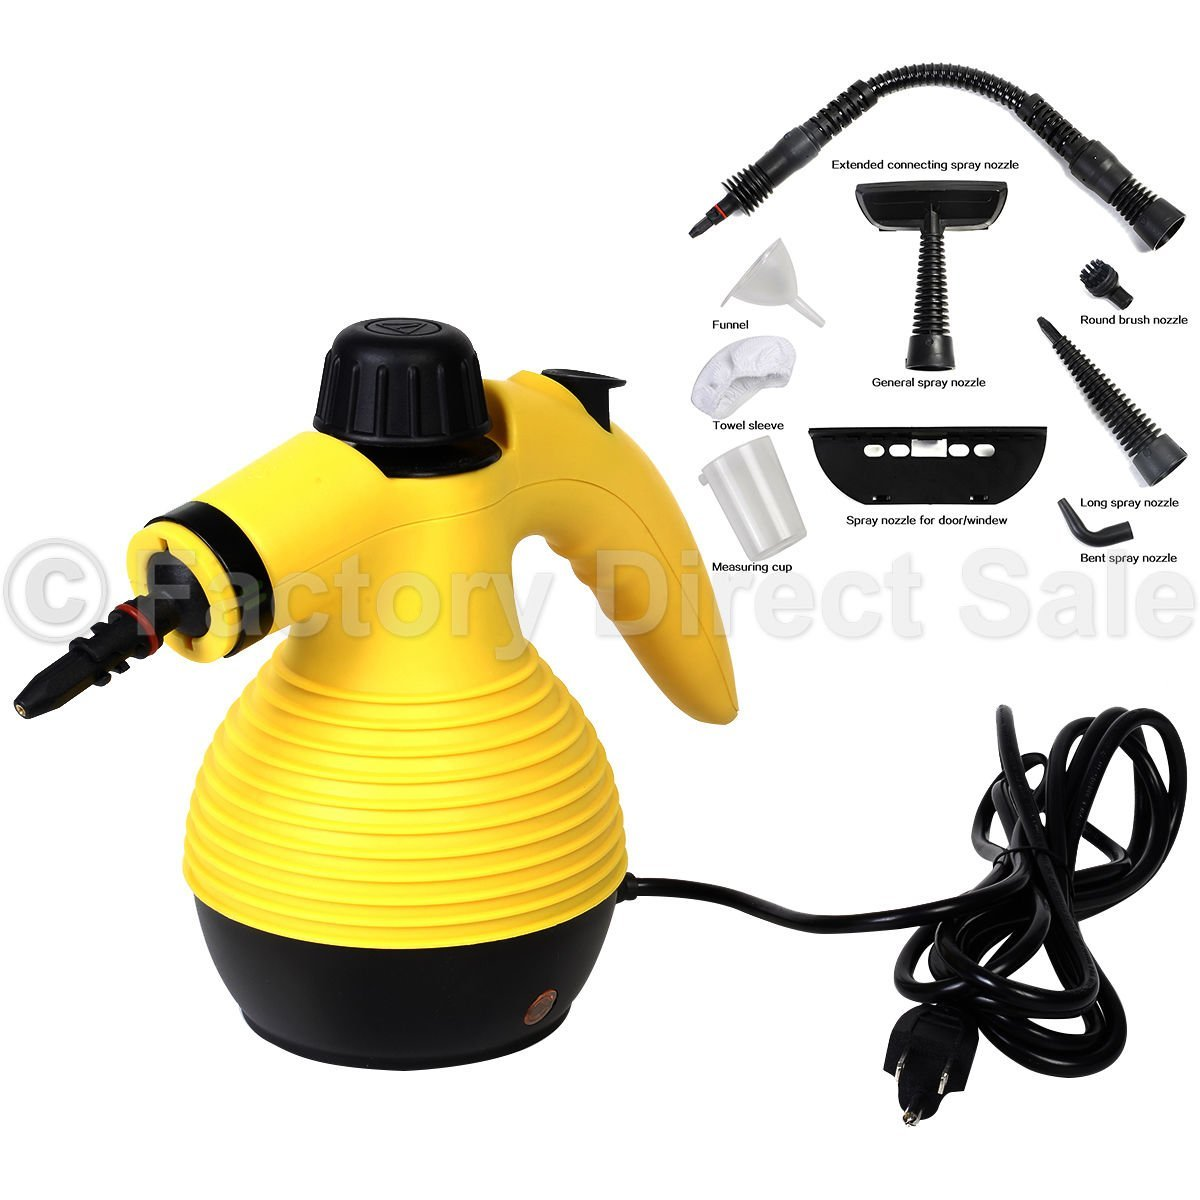 Mascarello® Multifunction Portable Steamer Household Steam Cleaner 1050W W/Attachments New